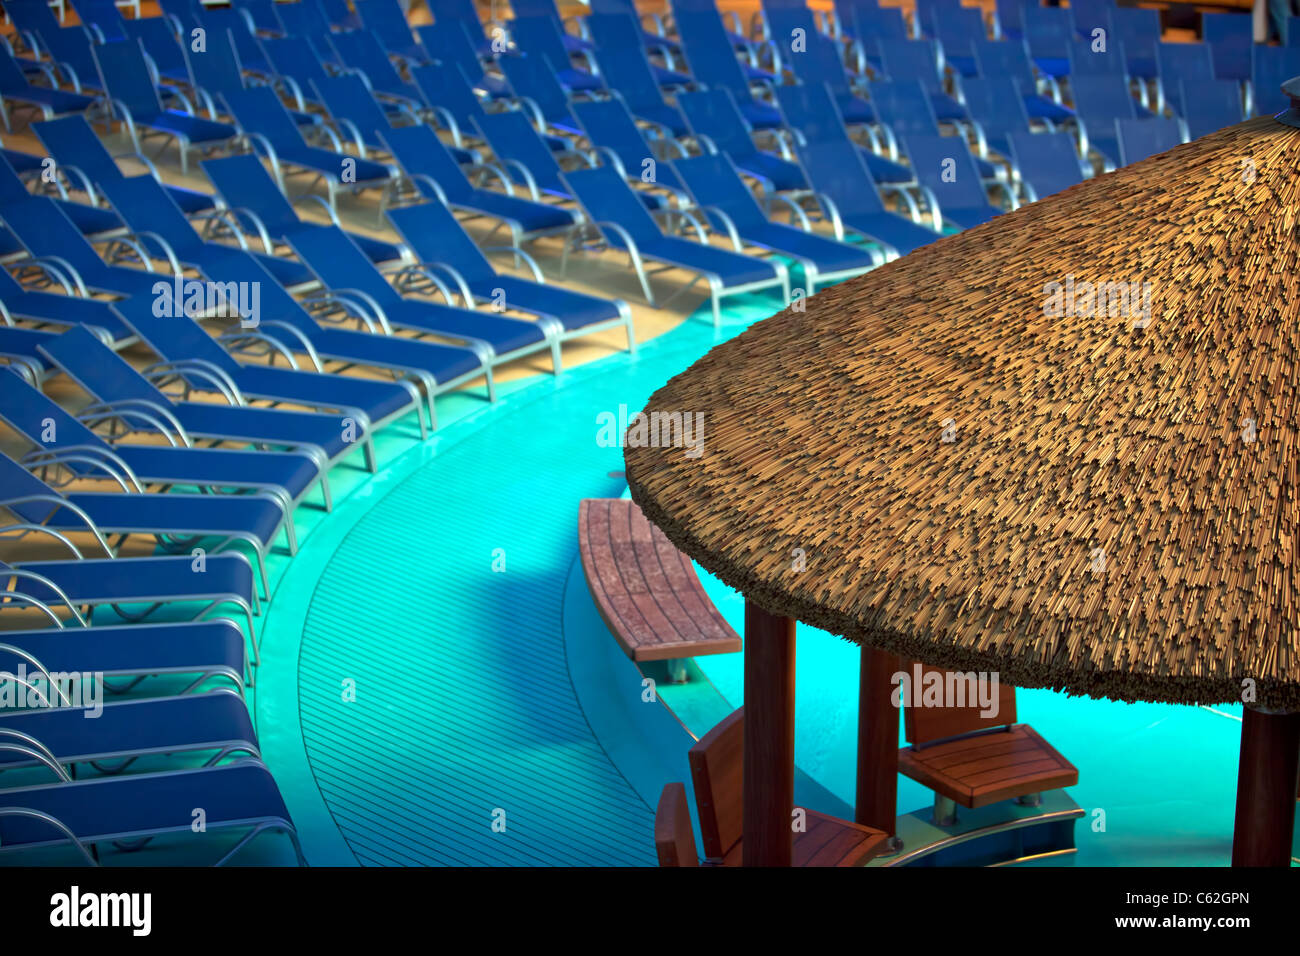 Cruise Ship Lounge Chairs, Swimming Pool And Grass Covered Cabana At Night  With No Passengers. European Vacation.